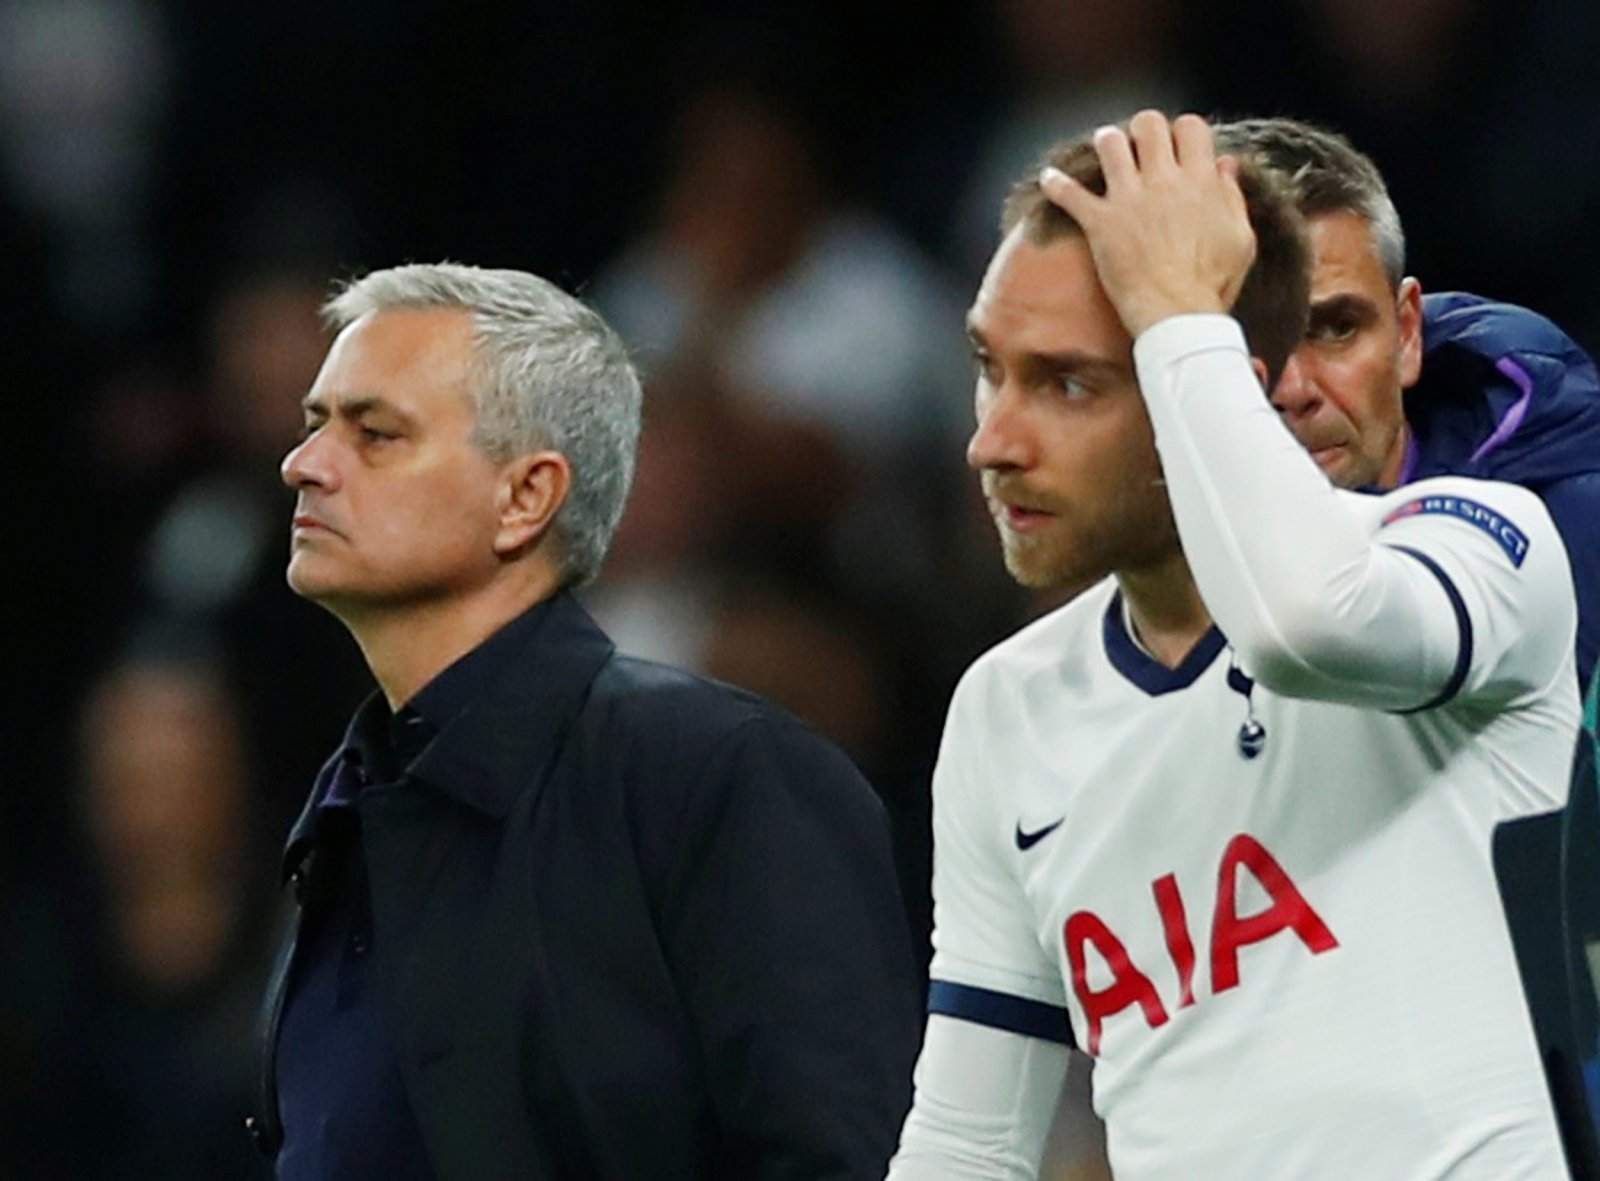 Tottenham Hotspur: Fans not happy with Christian Eriksen's cameo appearance against Manchester United